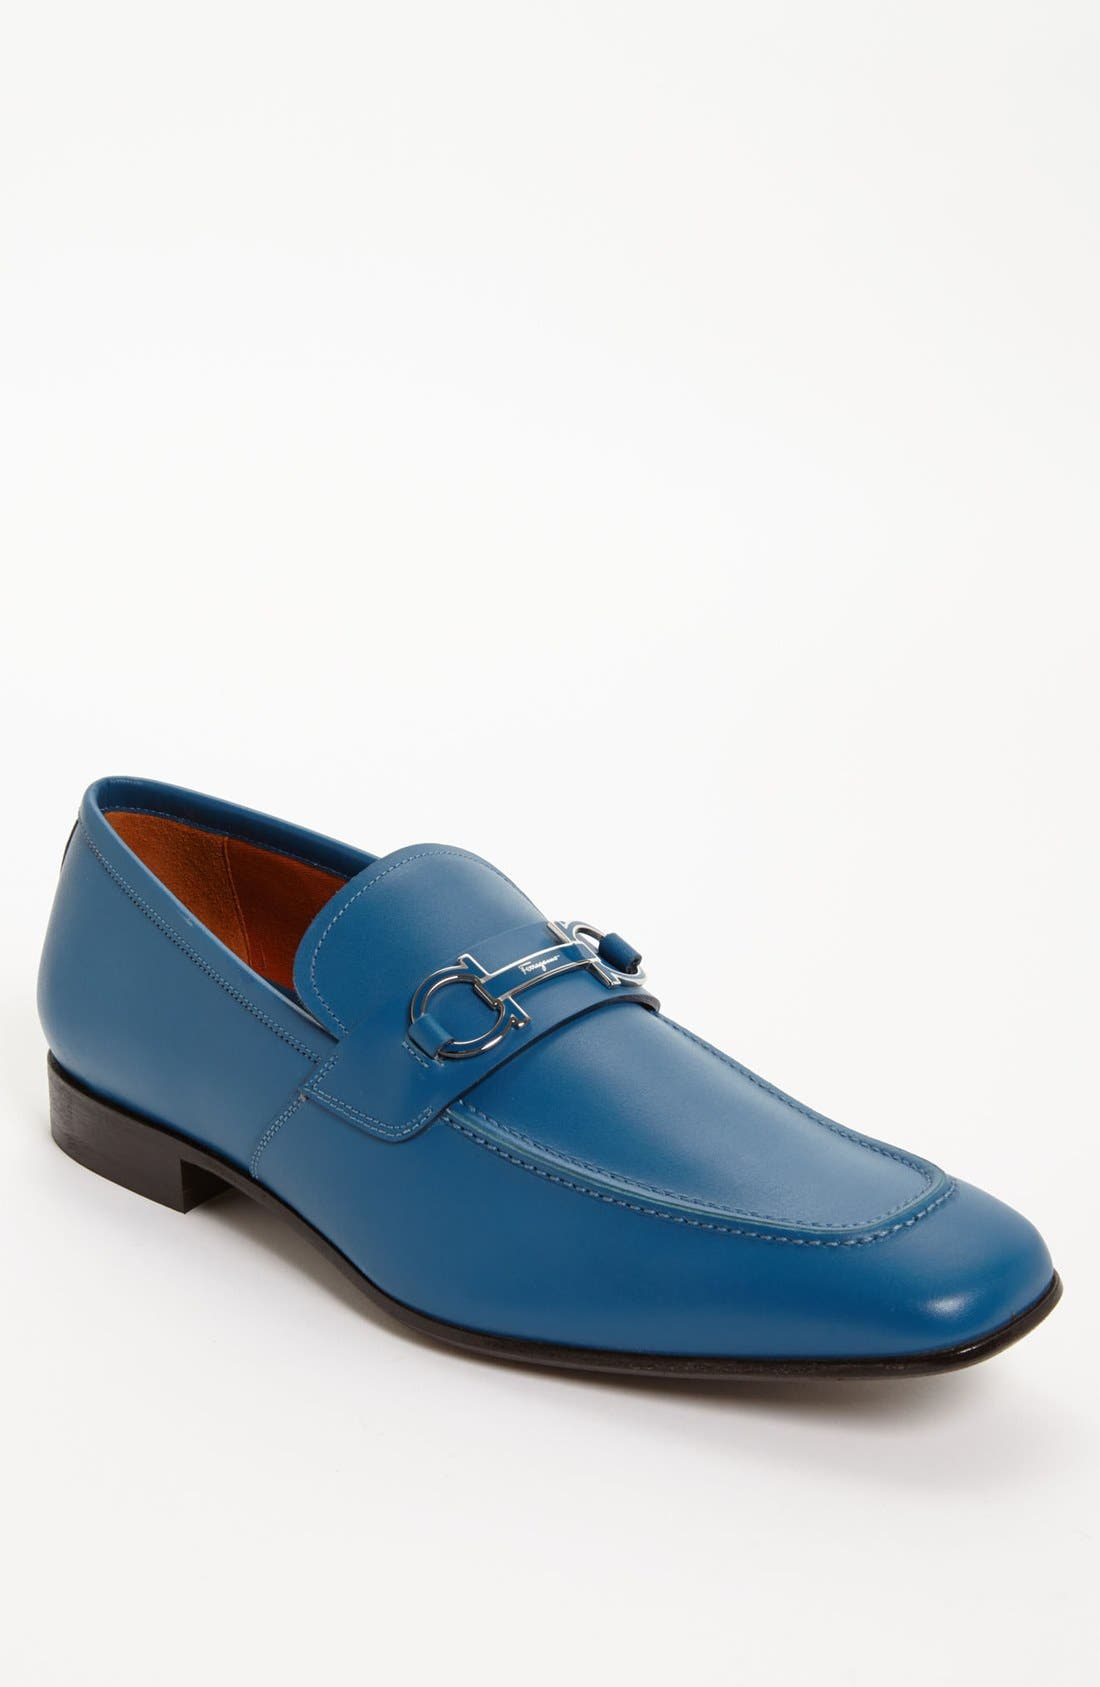 Main Image - Salvatore Ferragamo 'Tribute' Bit Loafer